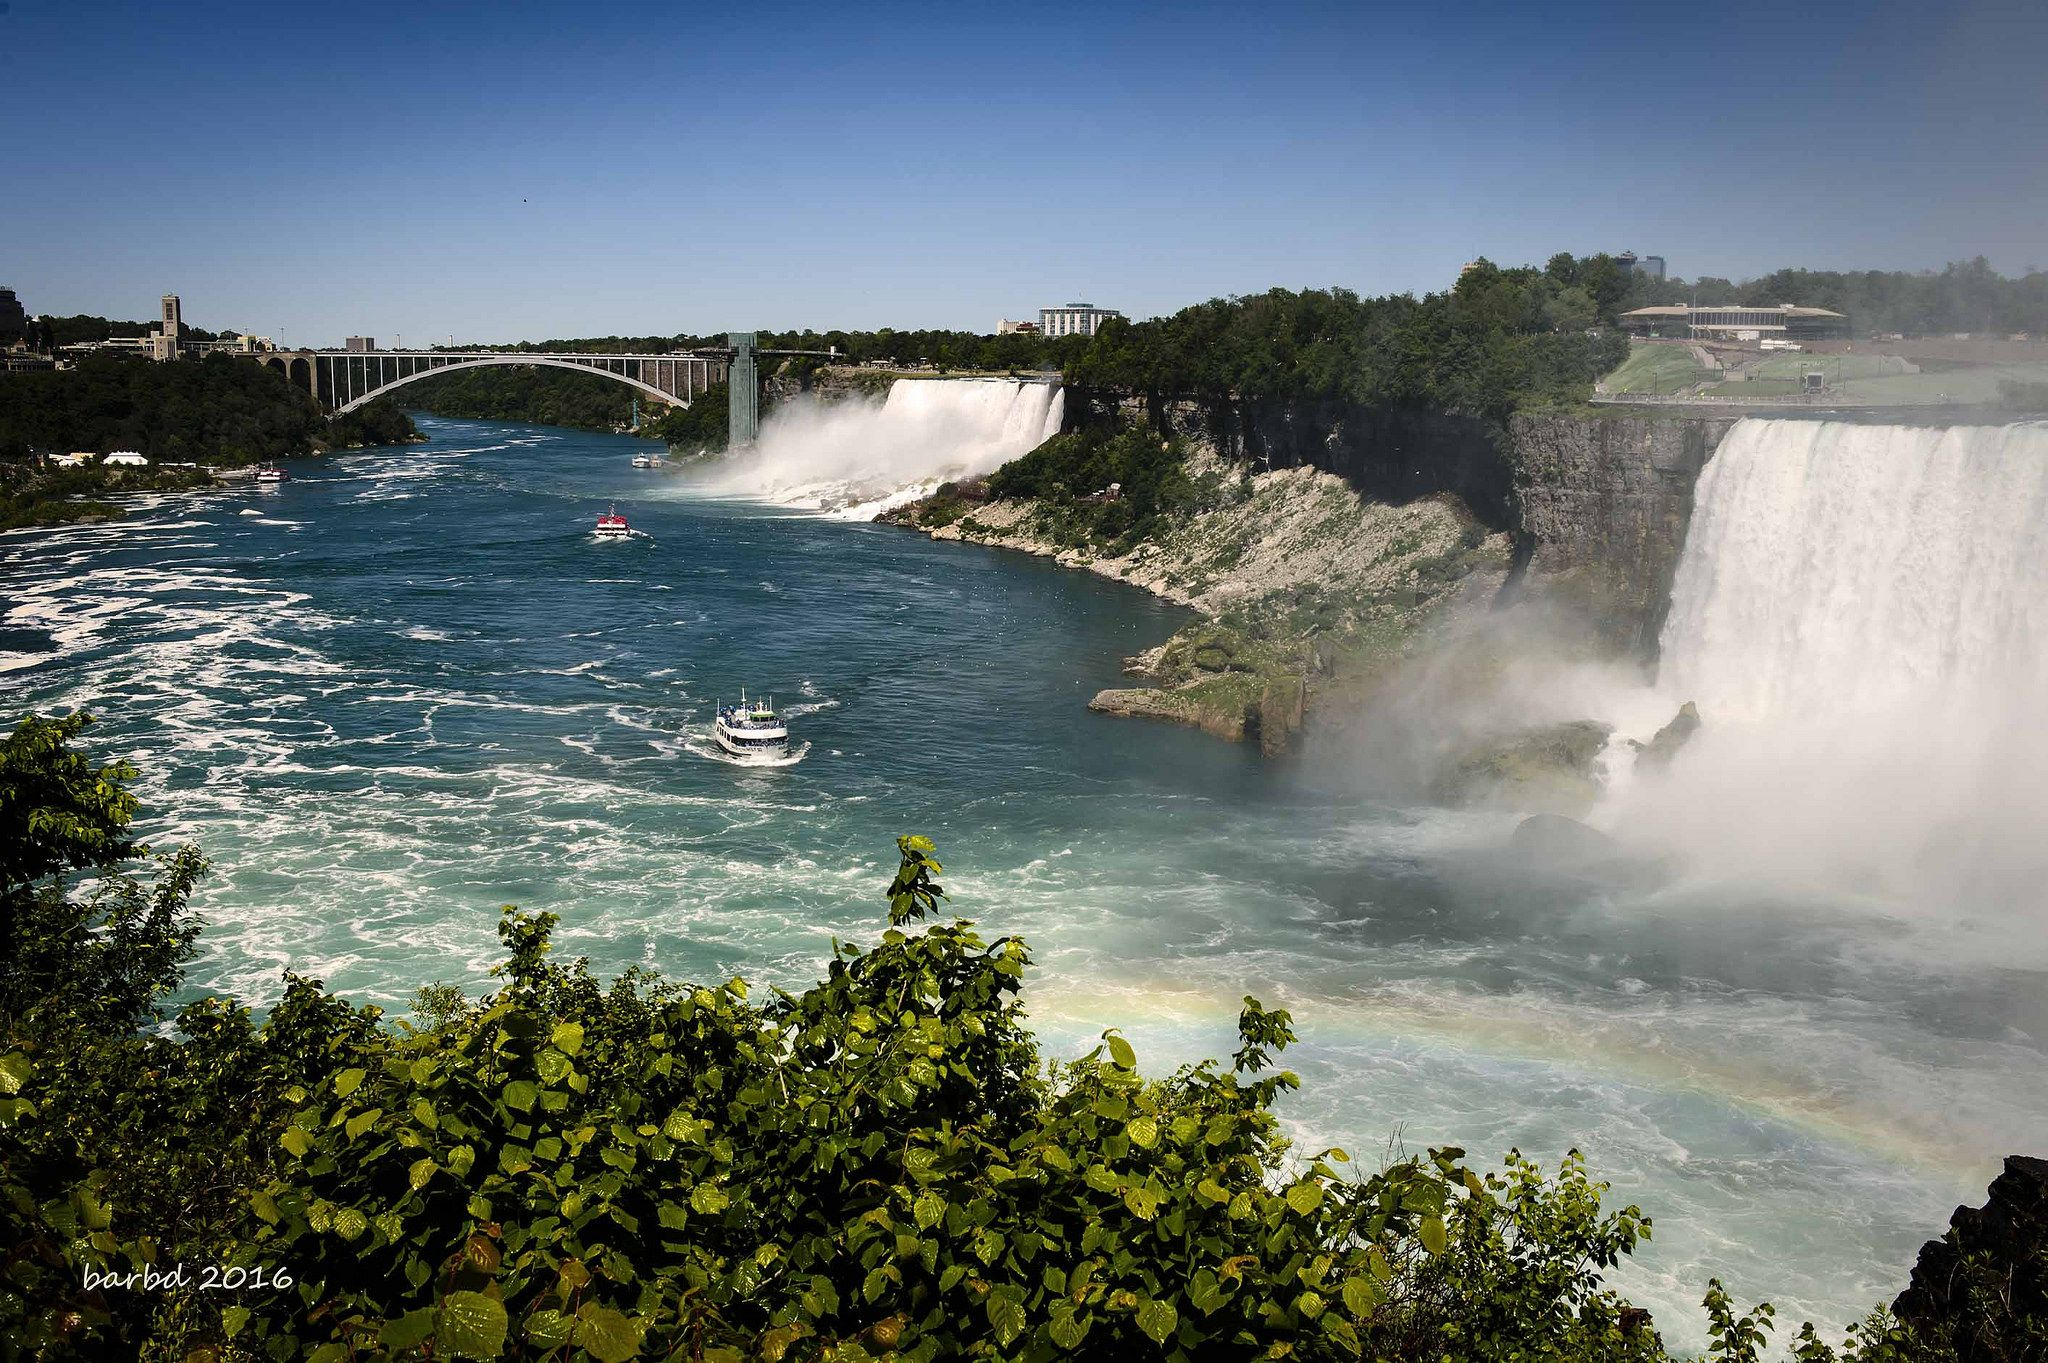 https://flic.kr/p/JqCYVJ | Niagara Falls | Our yearly trek to NF is always exciting.  Don't use this image on websites, blogs or other media without explicit permission. © Barbara Dickie. All rights reserved.